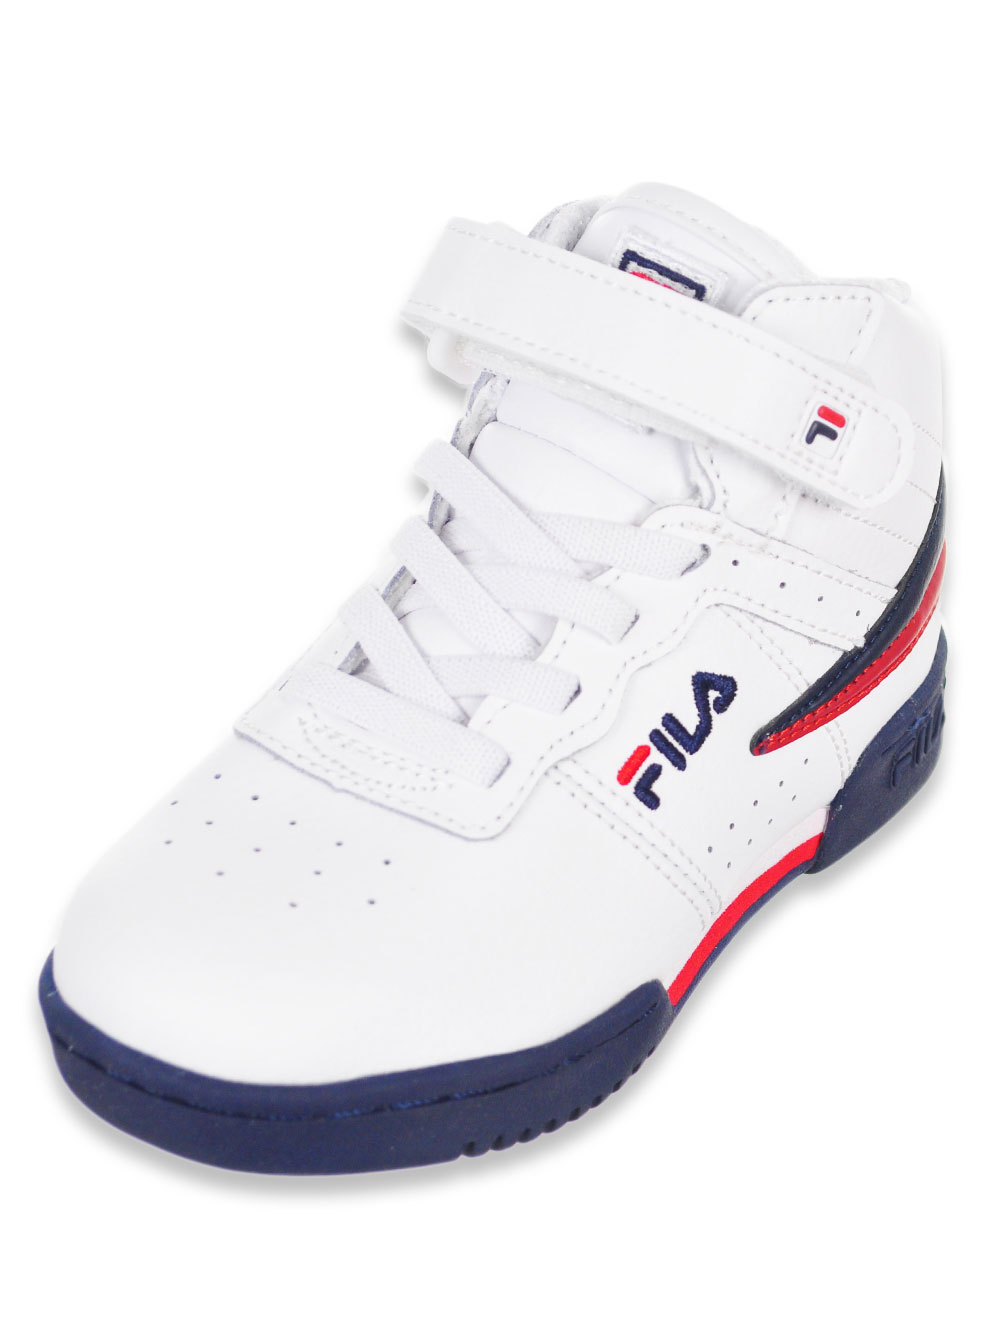 b7414a791244 Boys' F-13 Hi-Top Sneakers by Fila in black/white/fred, navy/white ...